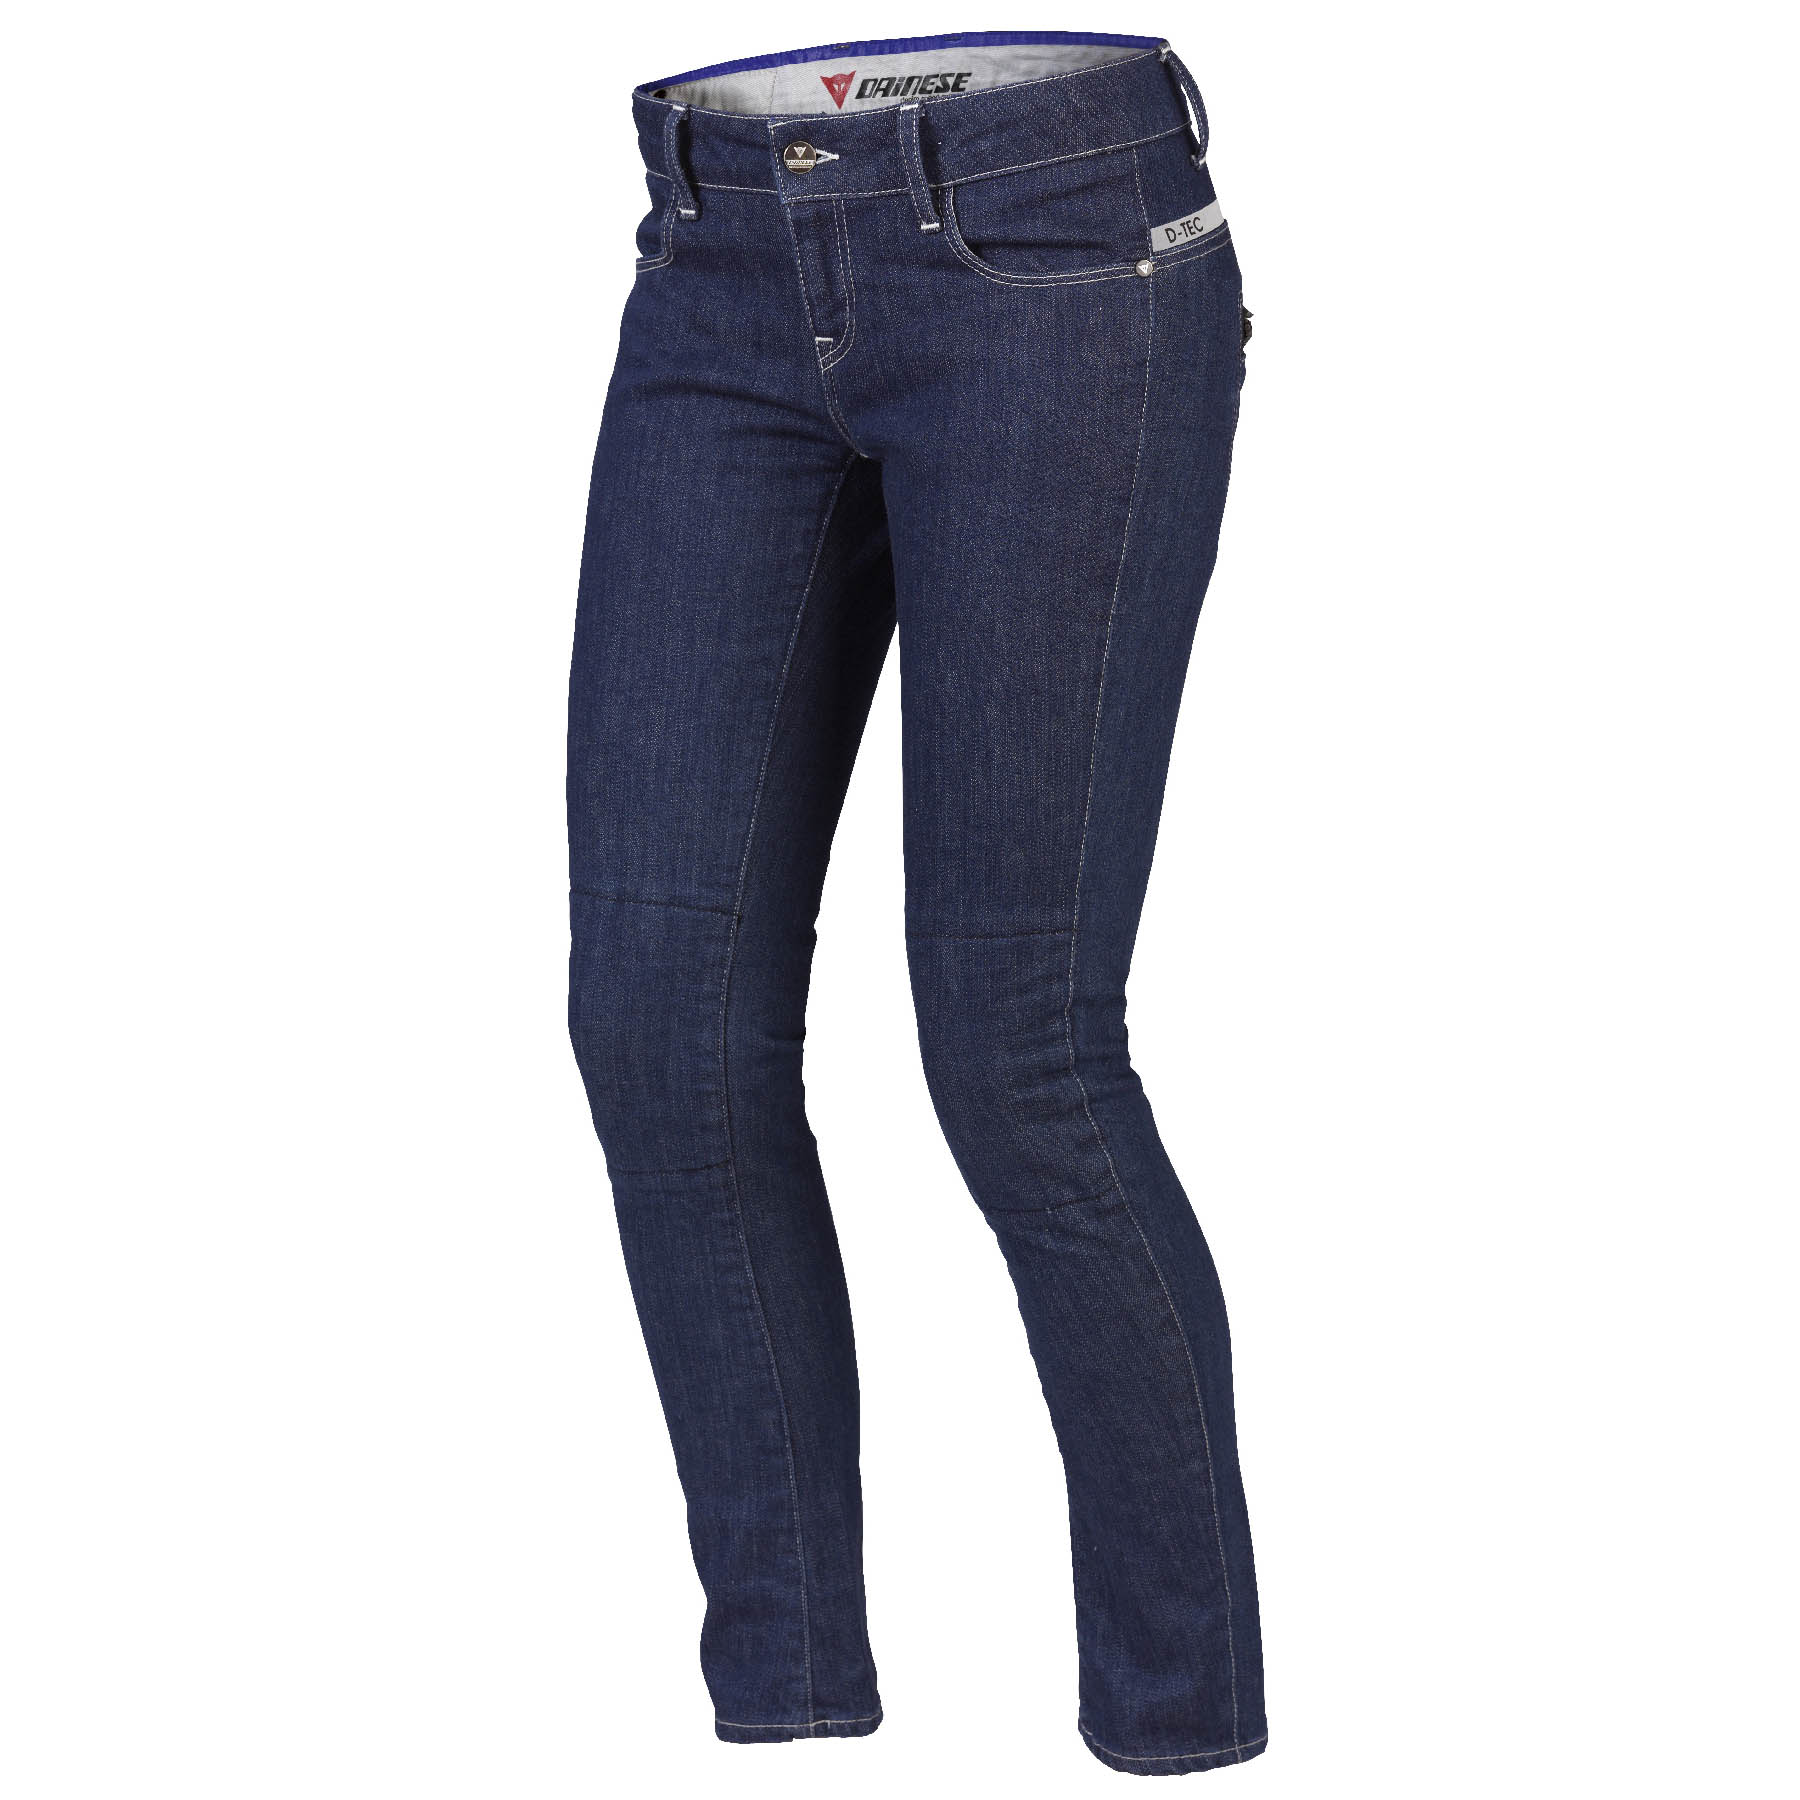 DAINESE D19 4K LADY JEANS